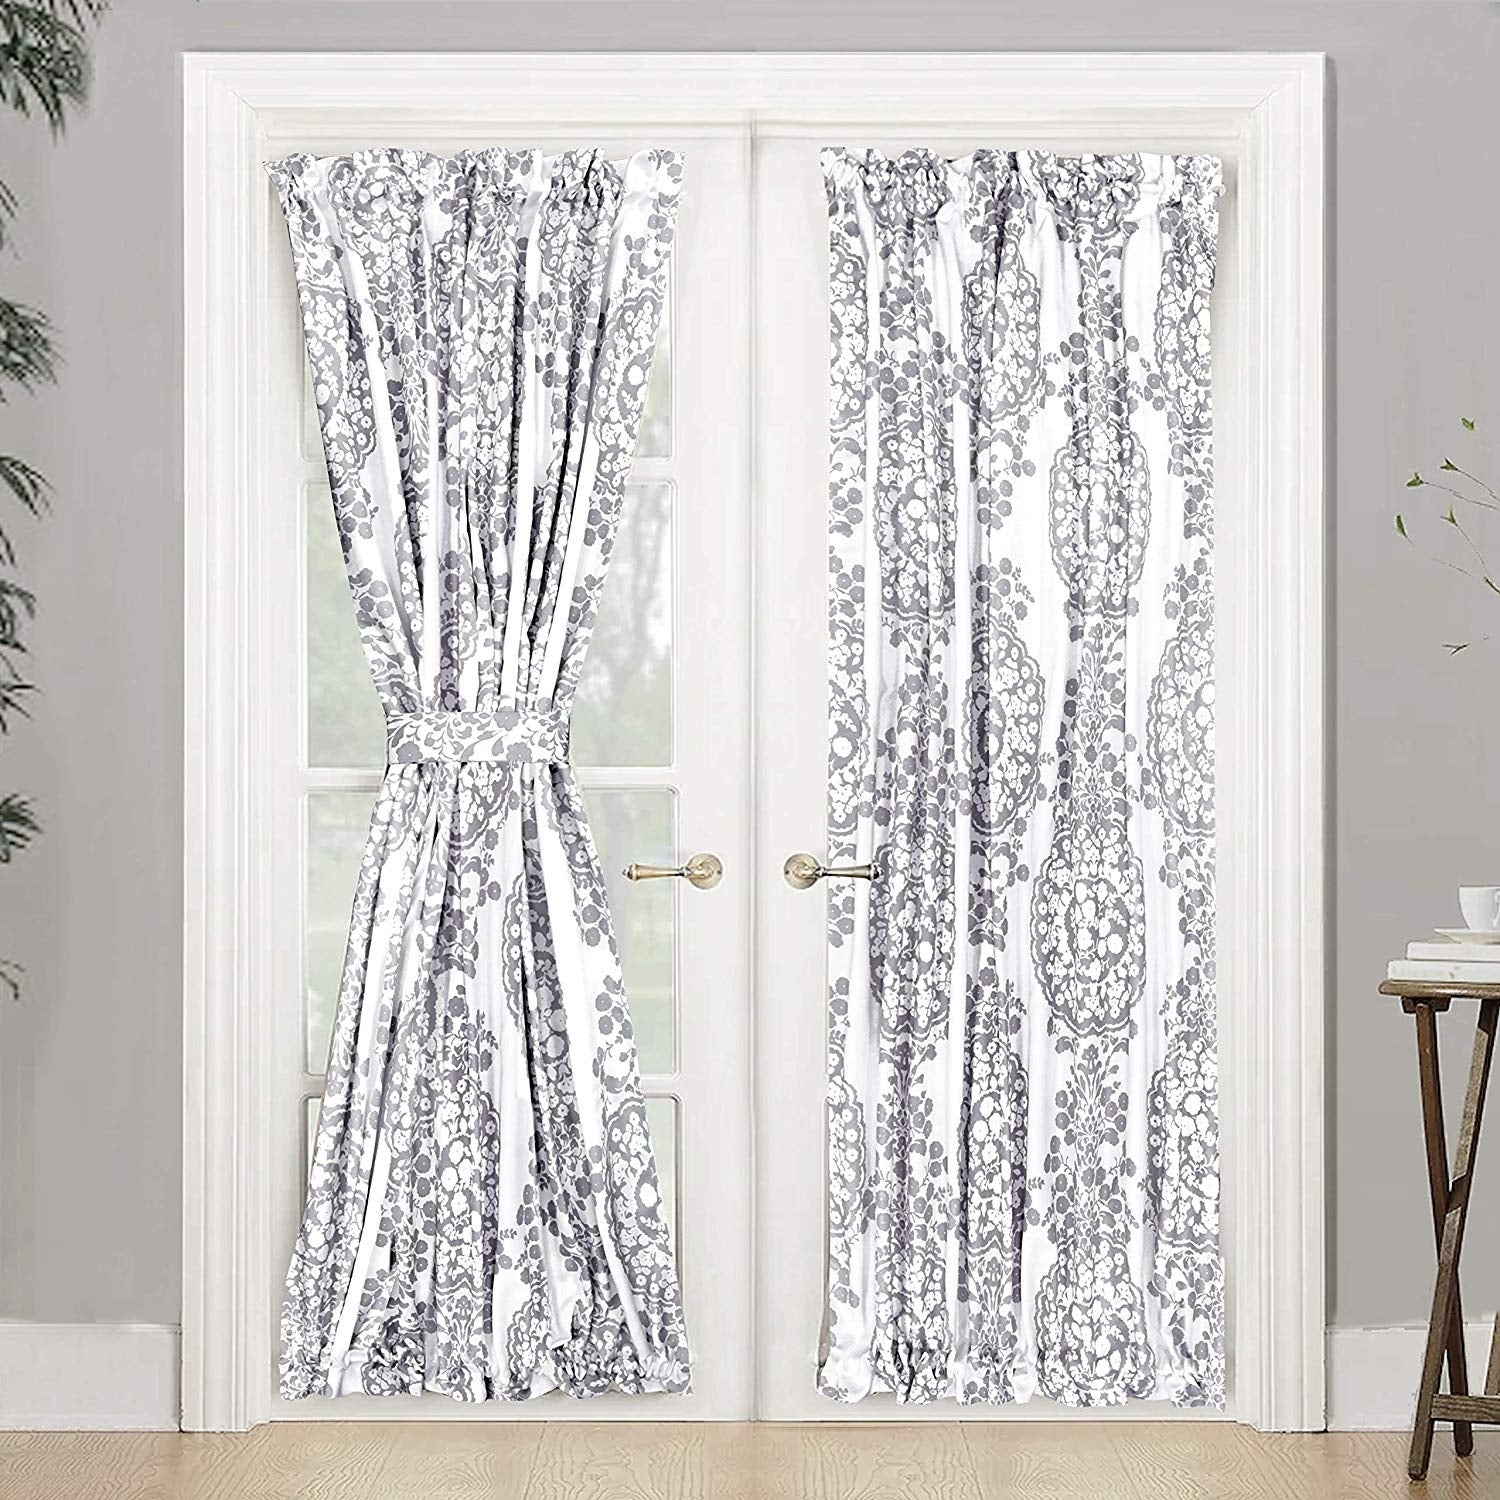 Image of: Shop Black Friday Deals On The Curated Nomad Alameda Room Darkening French Door Single Curtain Panel Overstock 25449058